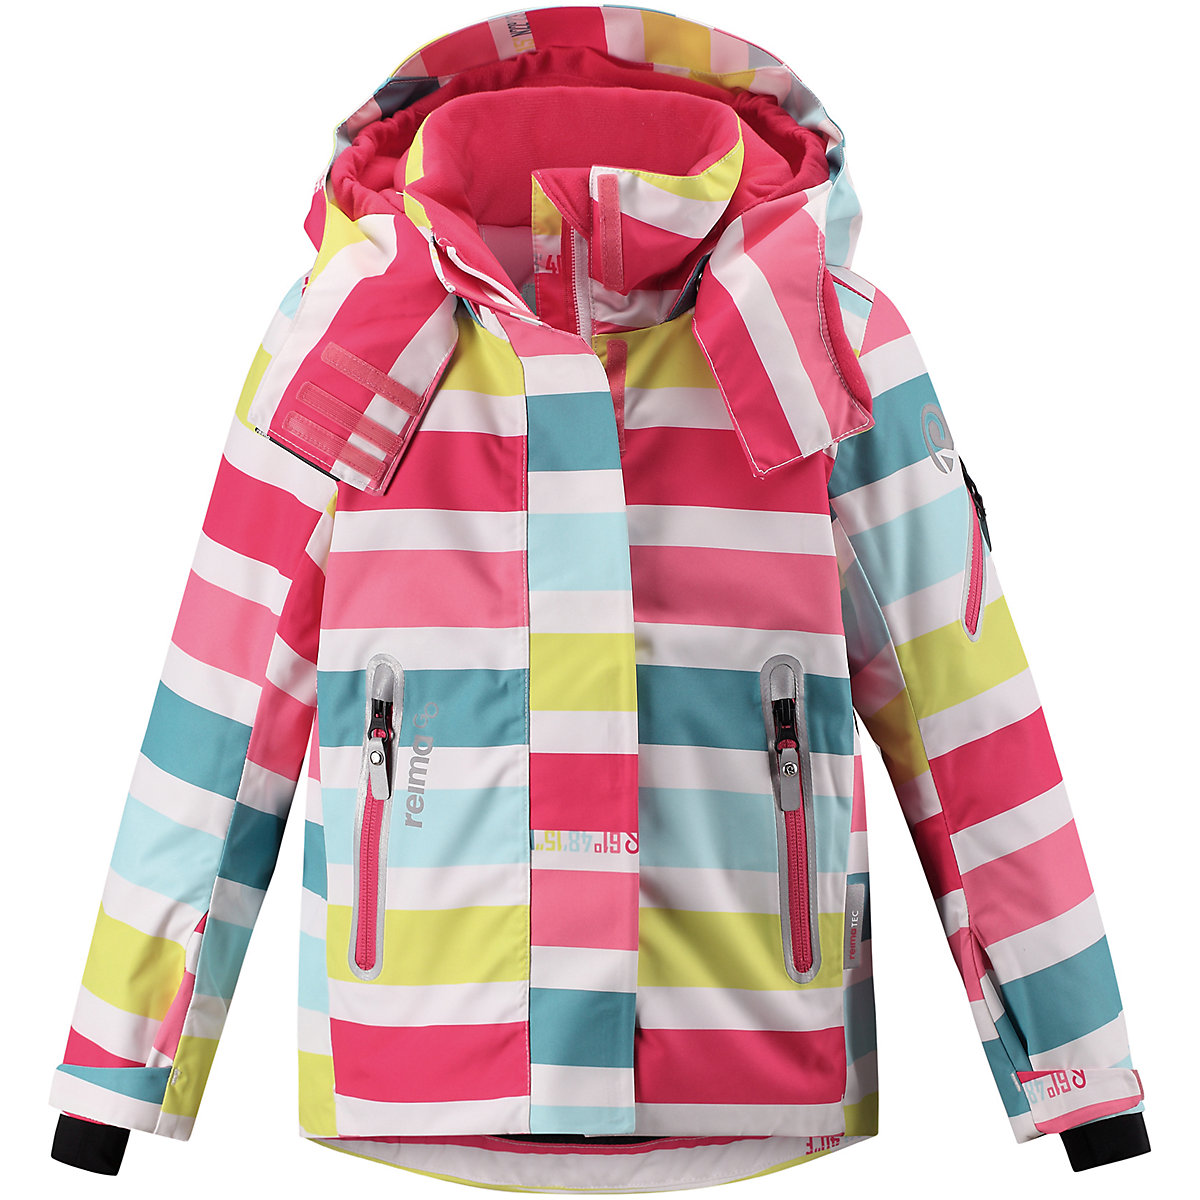 REIMA Jackets & Coats 8665366 for girls baby clothing winter warm boy girl jacket Polyester new baby rompers winter thick warm baby boy clothing long sleeve hooded jumpsuit kids newborn outwear for 0 36m